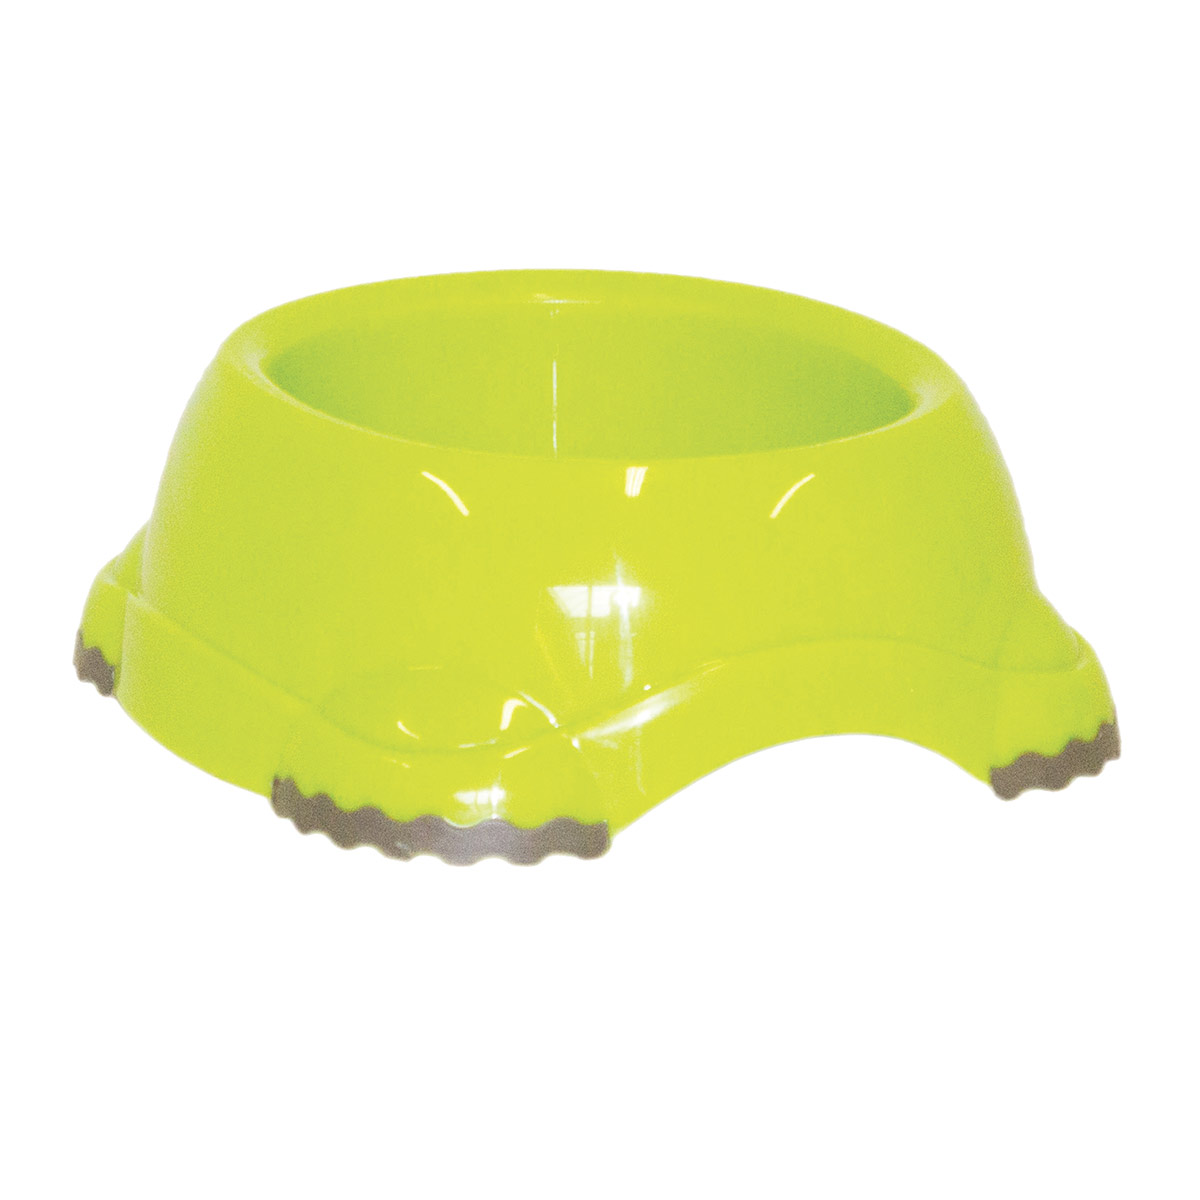 Fun Green Smarty Bowl Cat Bowl - 0.8 Cup Capacity